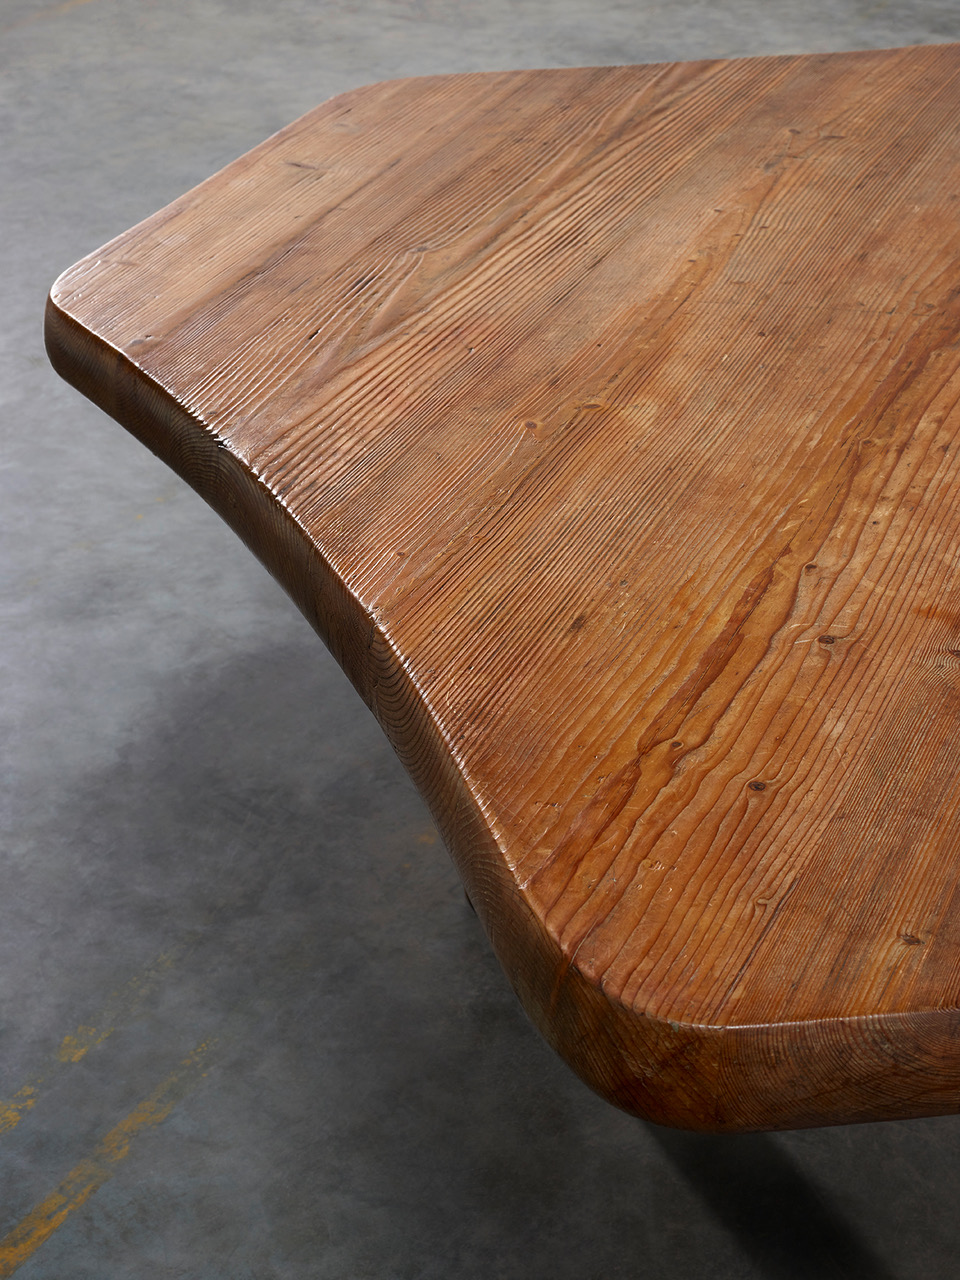 Galerie Downtown Six Sided Table Galerie Downtown - Six sided table